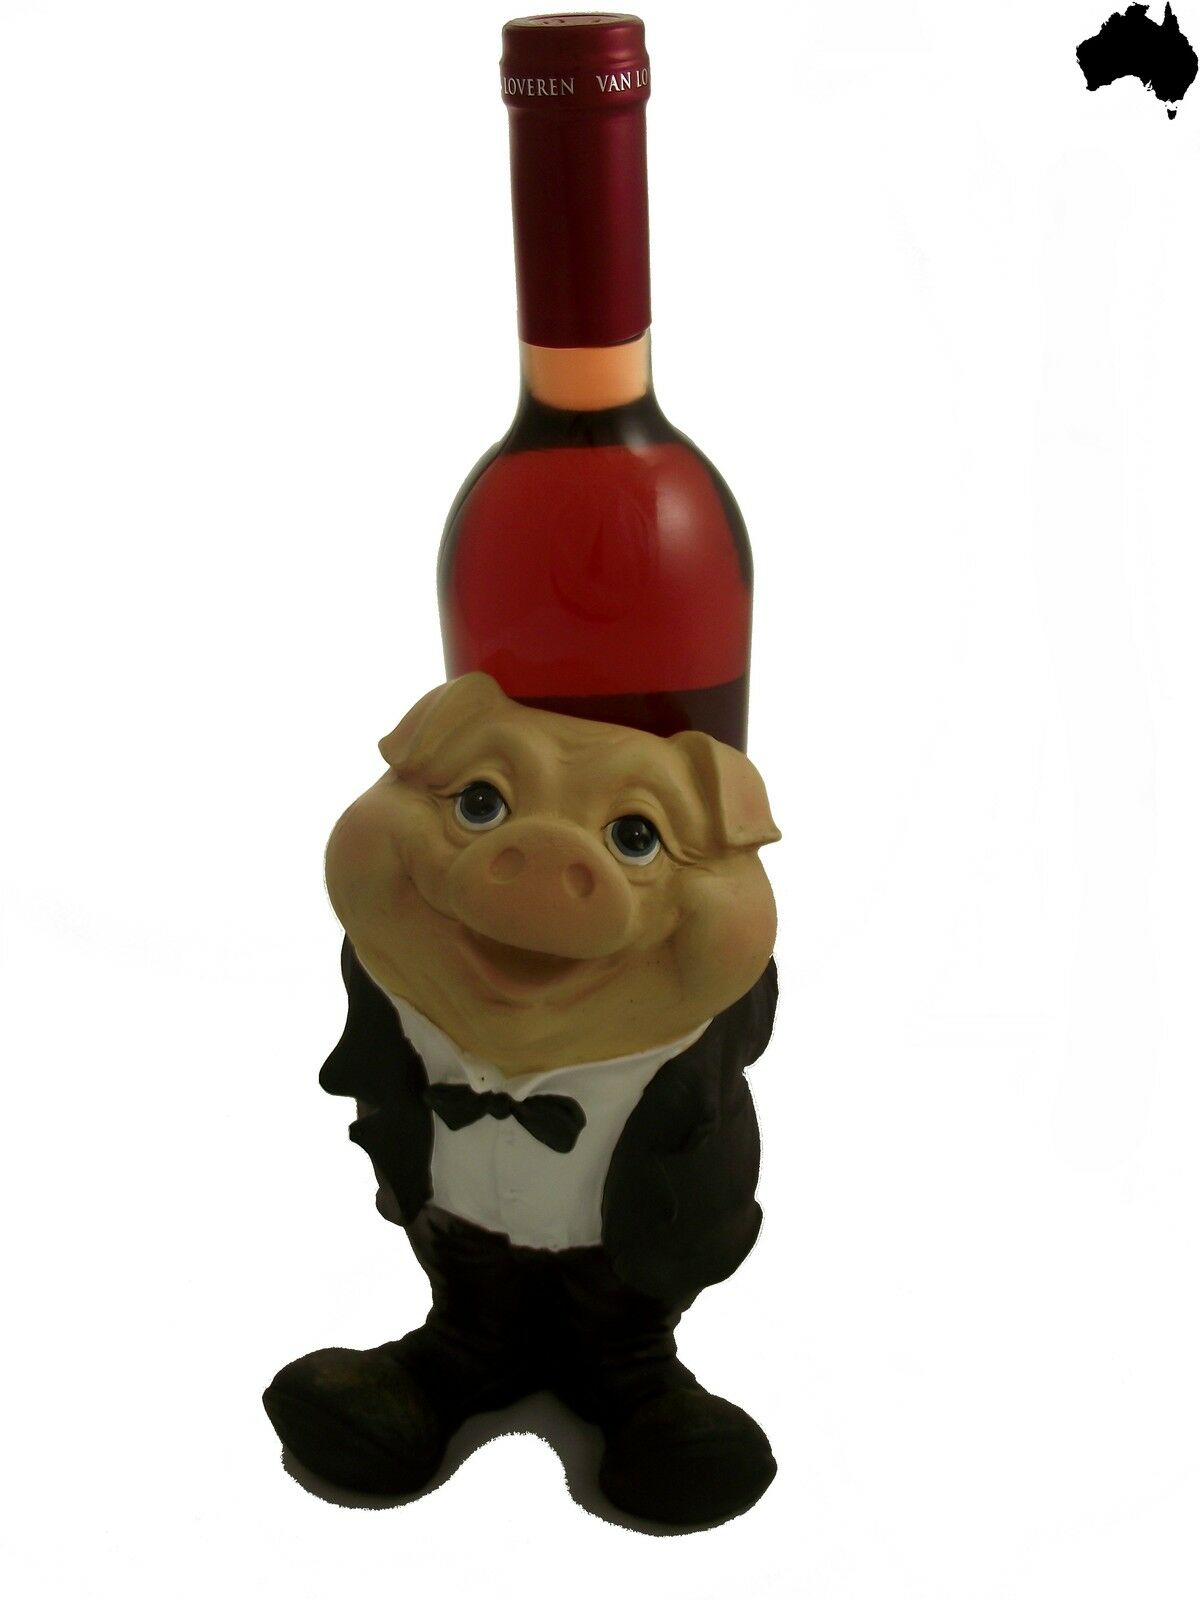 Wine Bottle Holder Pig Suit Waiter 23cm Bar Kitchen Table Gift Xmas Novelty Idea